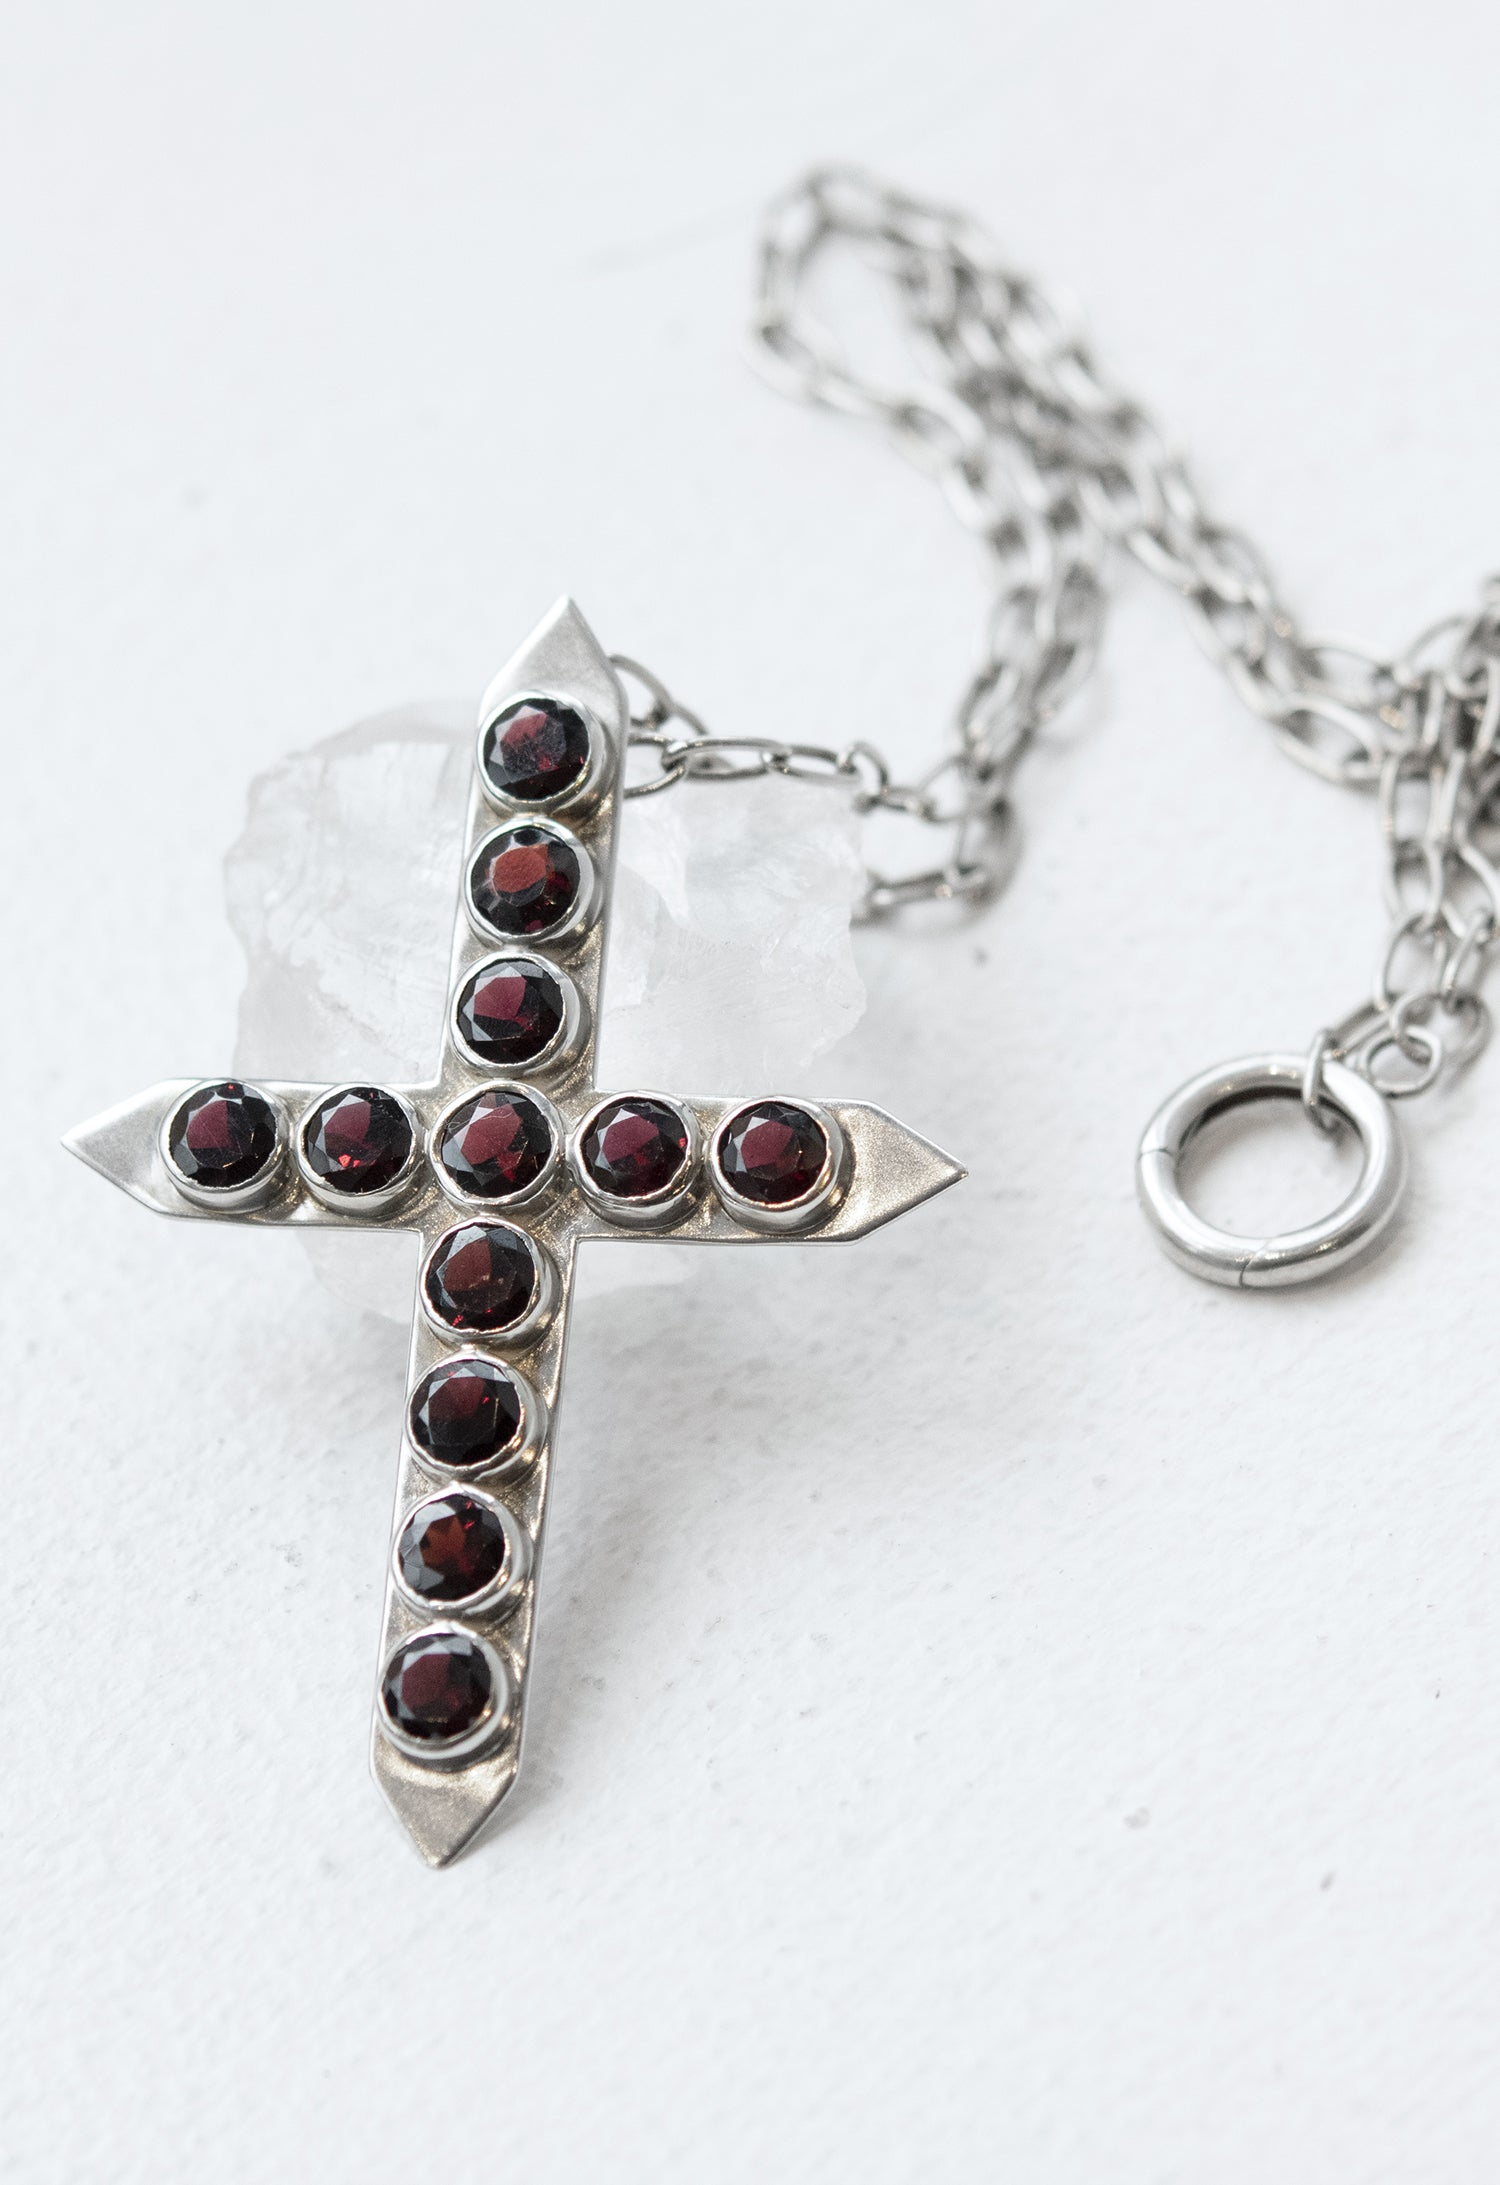 Precious Garnet Studded Cross Pendant Necklace